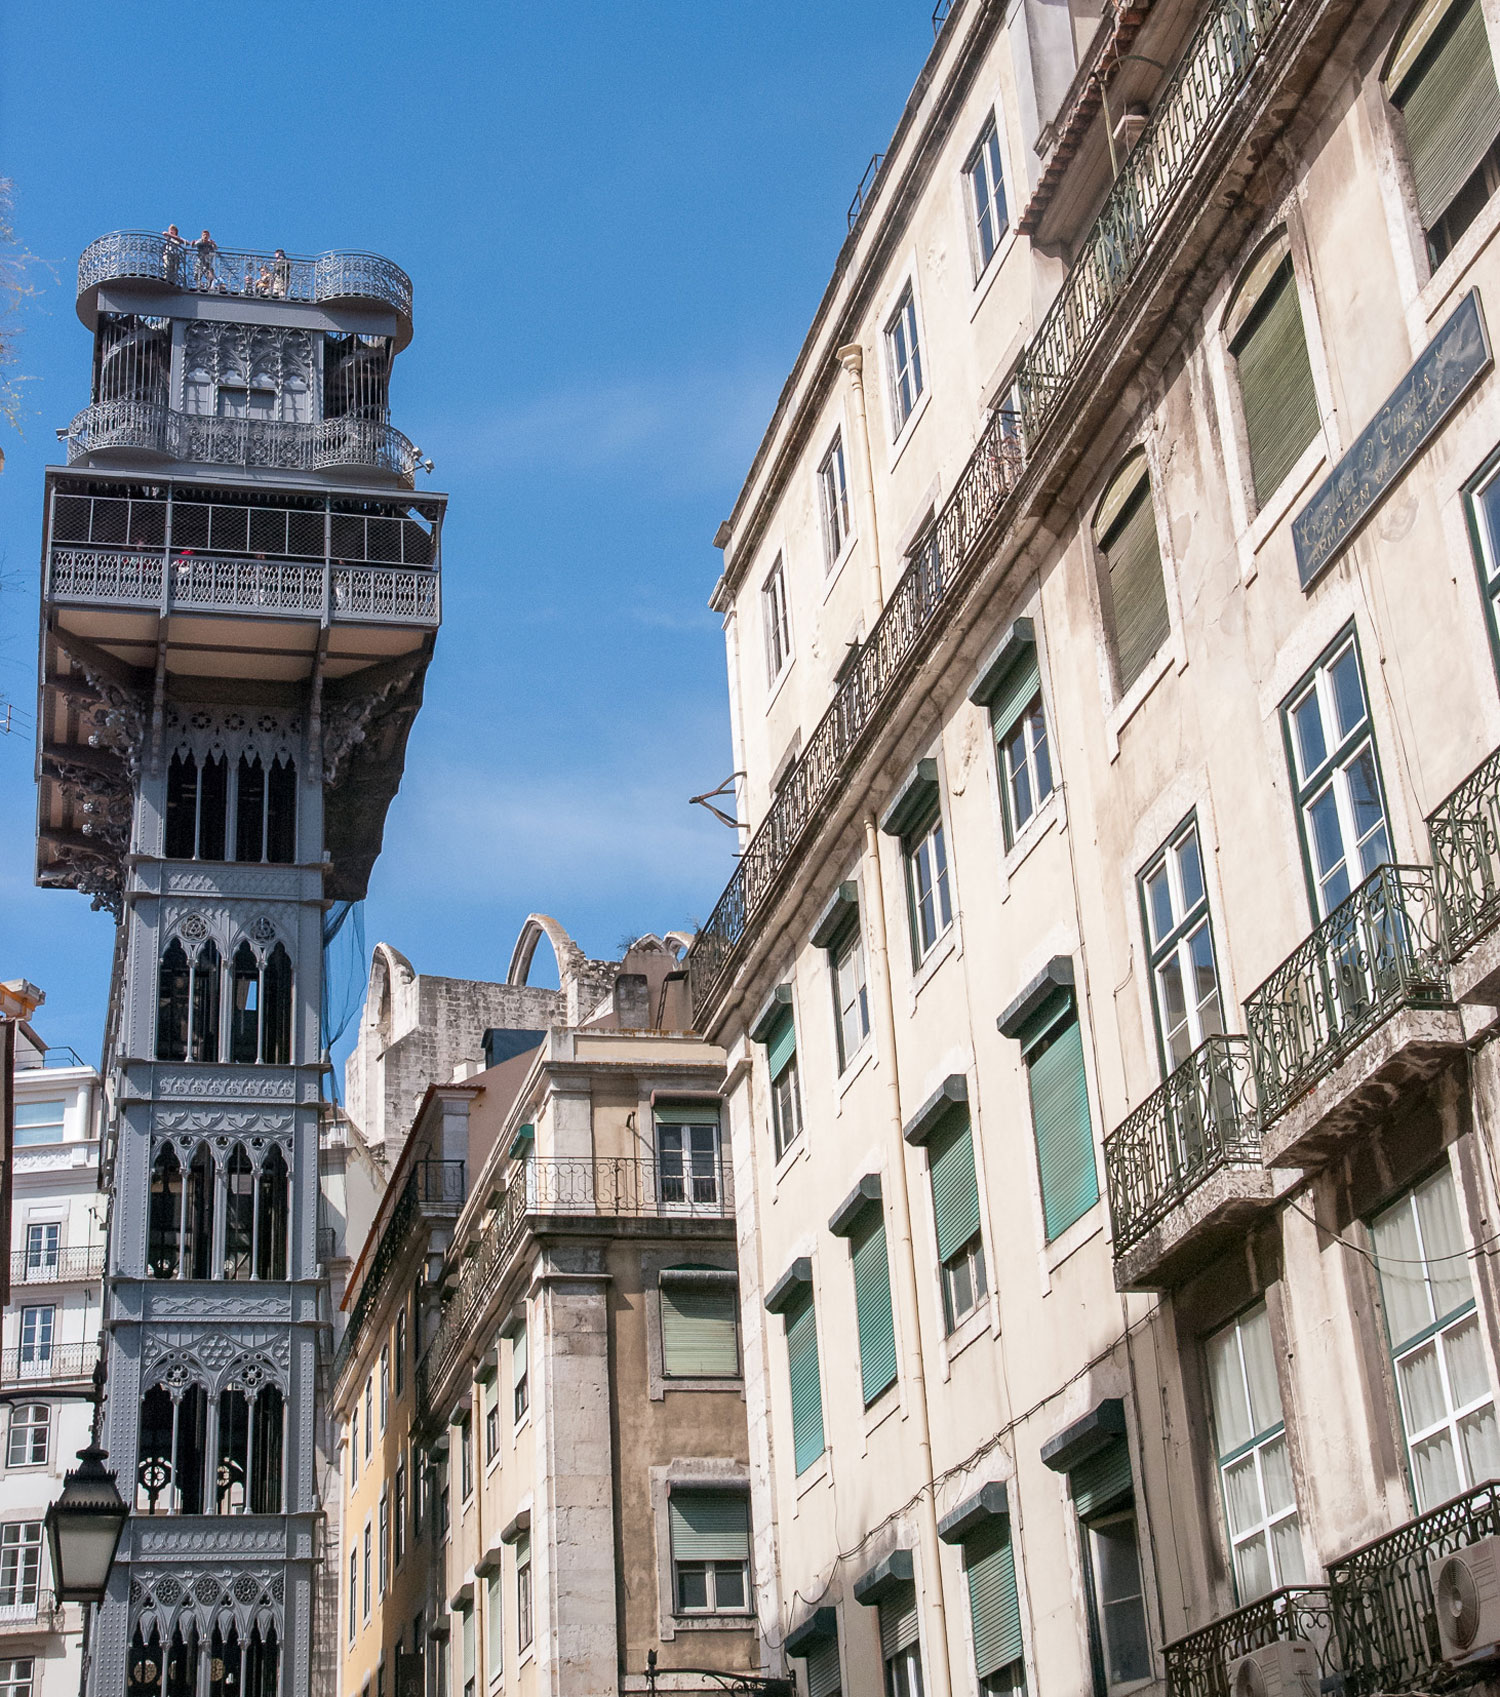 Santa Justa Lift, an antique elevator in downtown Lisbon